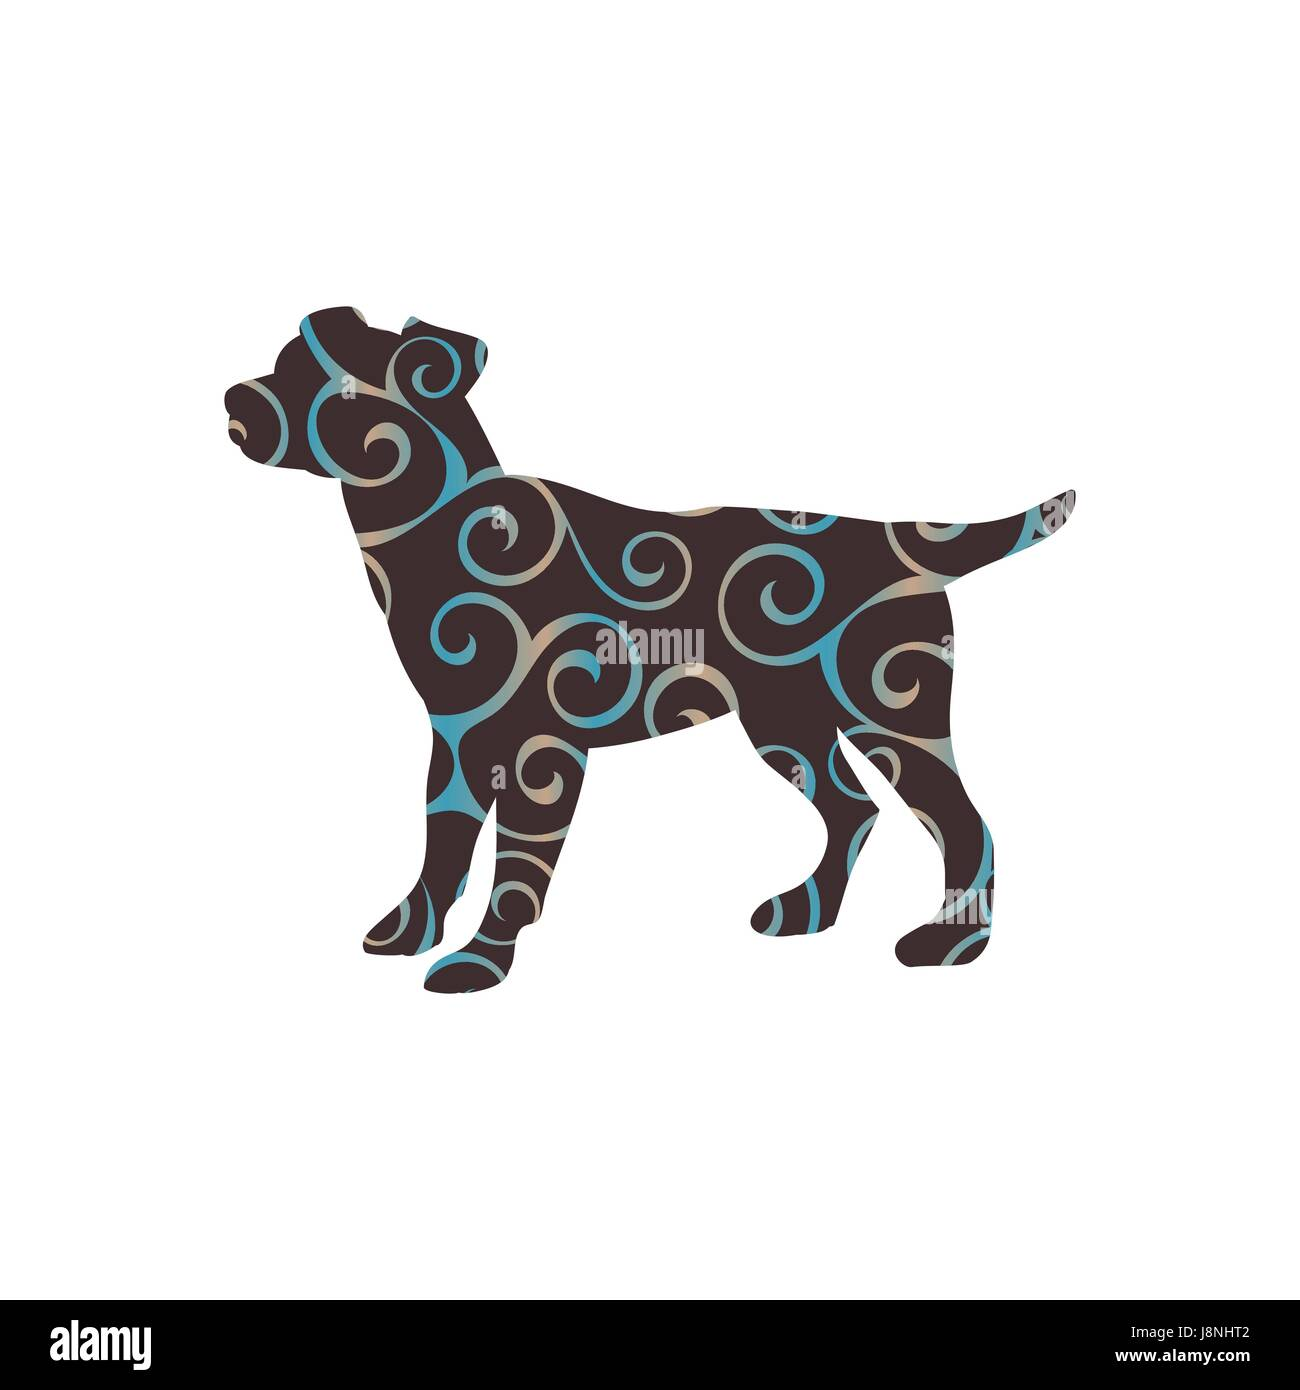 Dog pup pet color silhouette animal - Stock Image